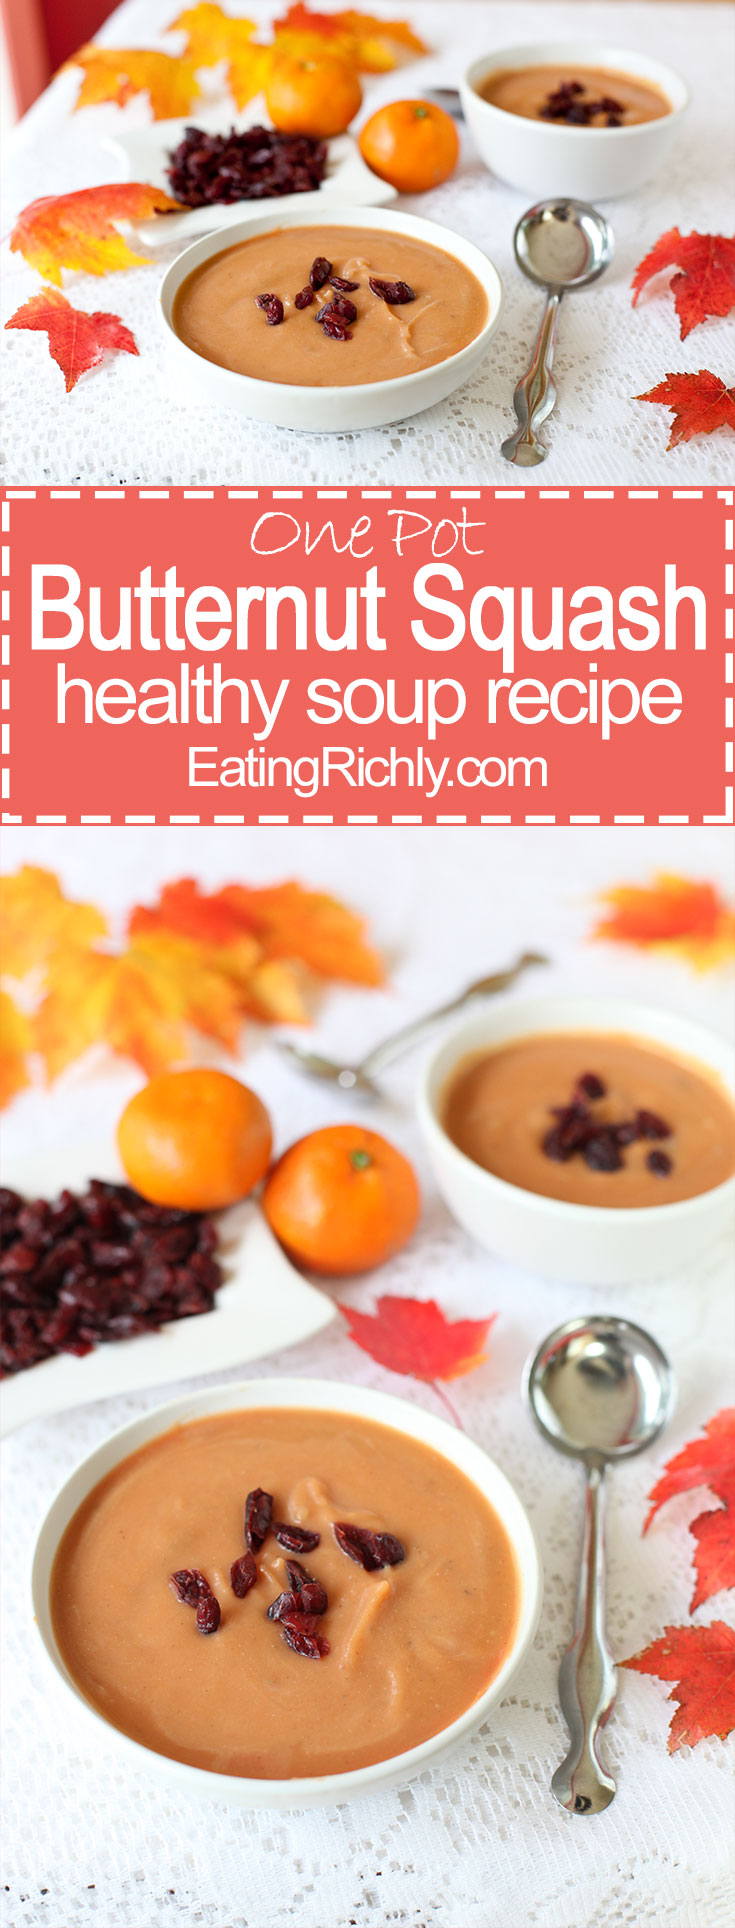 Butternut squash soup recipe uses affordable and seasonal ingredients, and is super healthy with no heavy cream and a small amount of butter. Plus it's a one pot dish! From EatingRichly.com